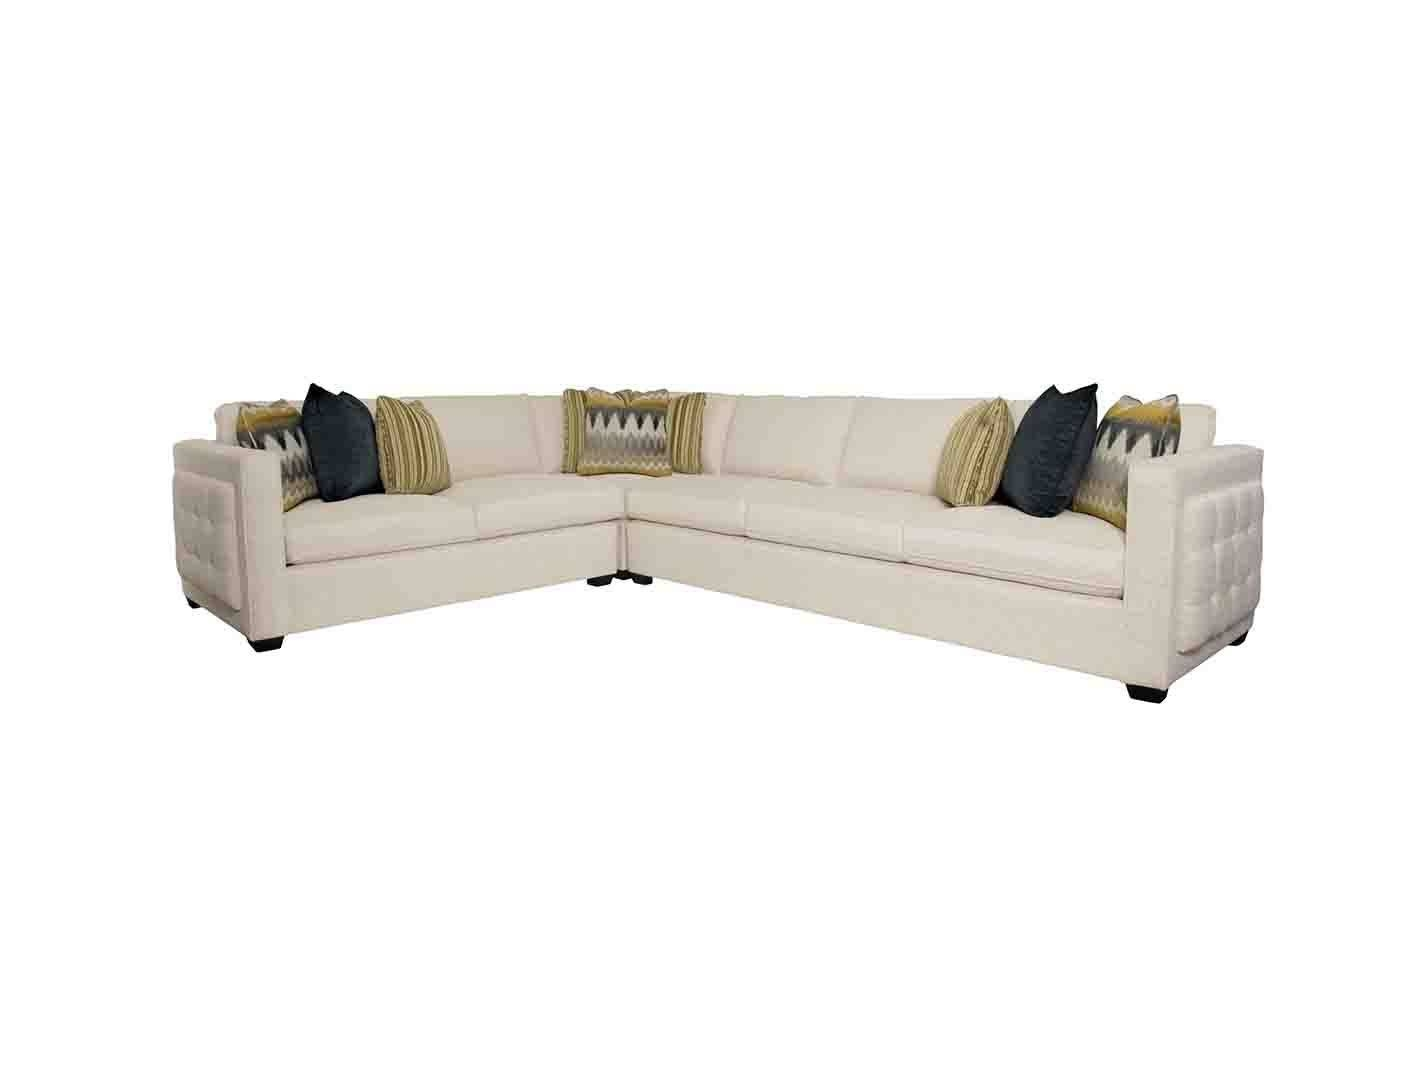 bradley sectional sofa Home The Honoroak